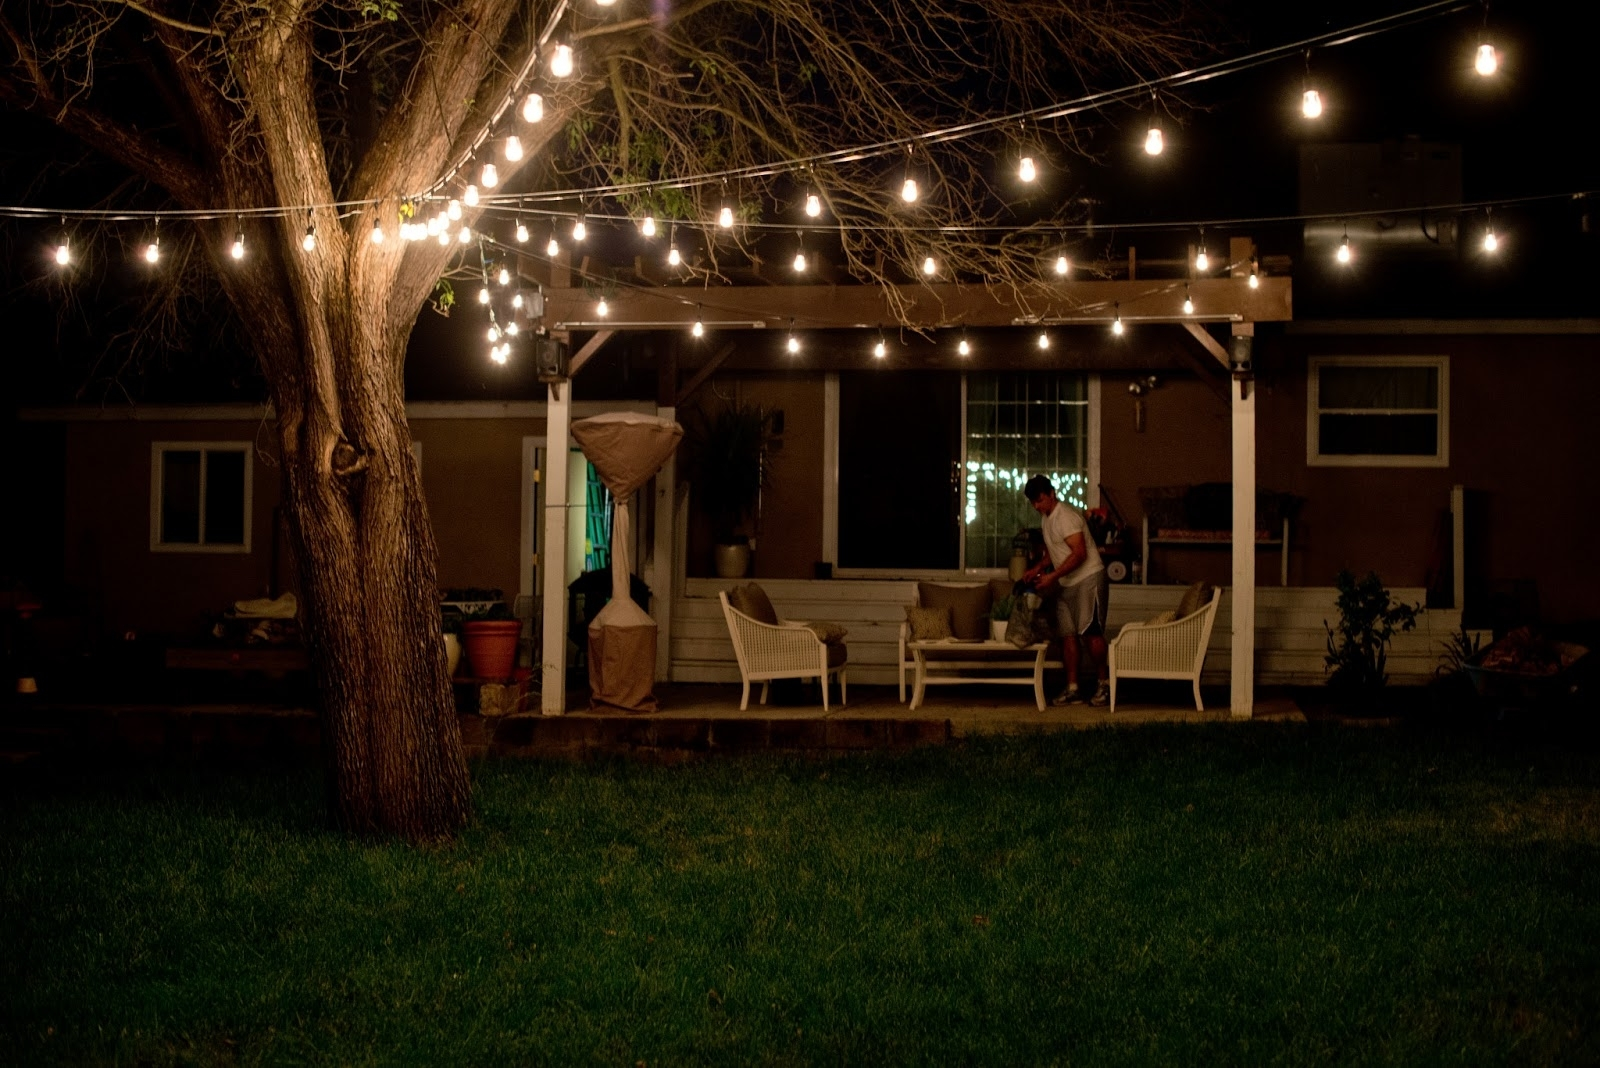 Preferred Solar Hanging Outdoor Patio Lights Pertaining To Incredible Hanging Patio Lights The Benefits Of Outdoor Patio Lights (View 13 of 20)